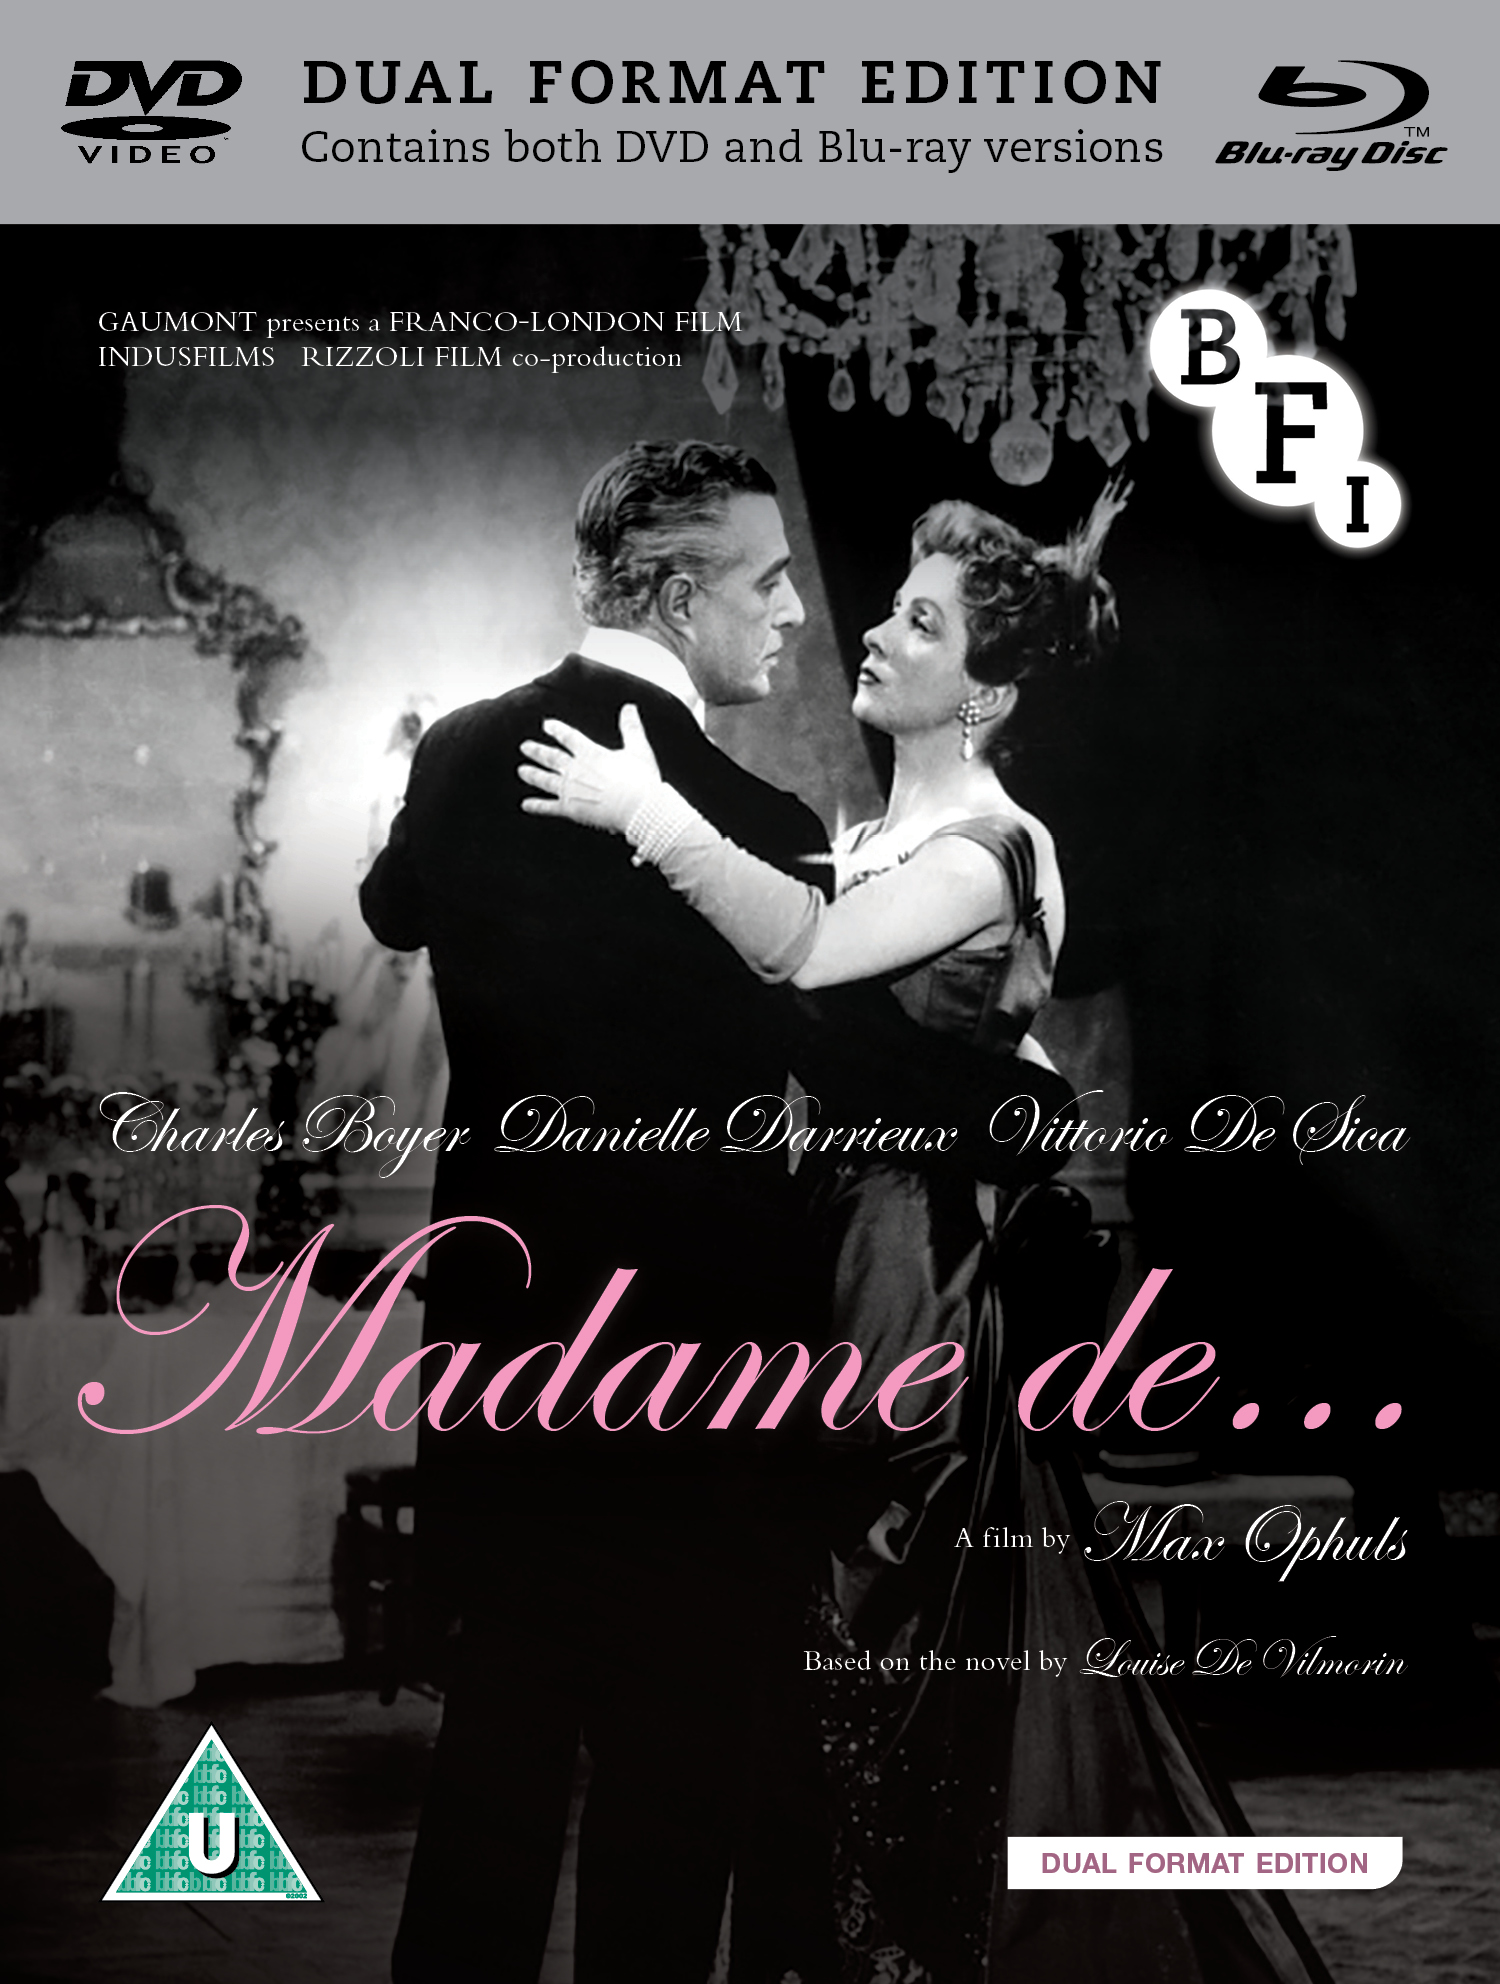 Buy Madame de... (Dual Format Edition)